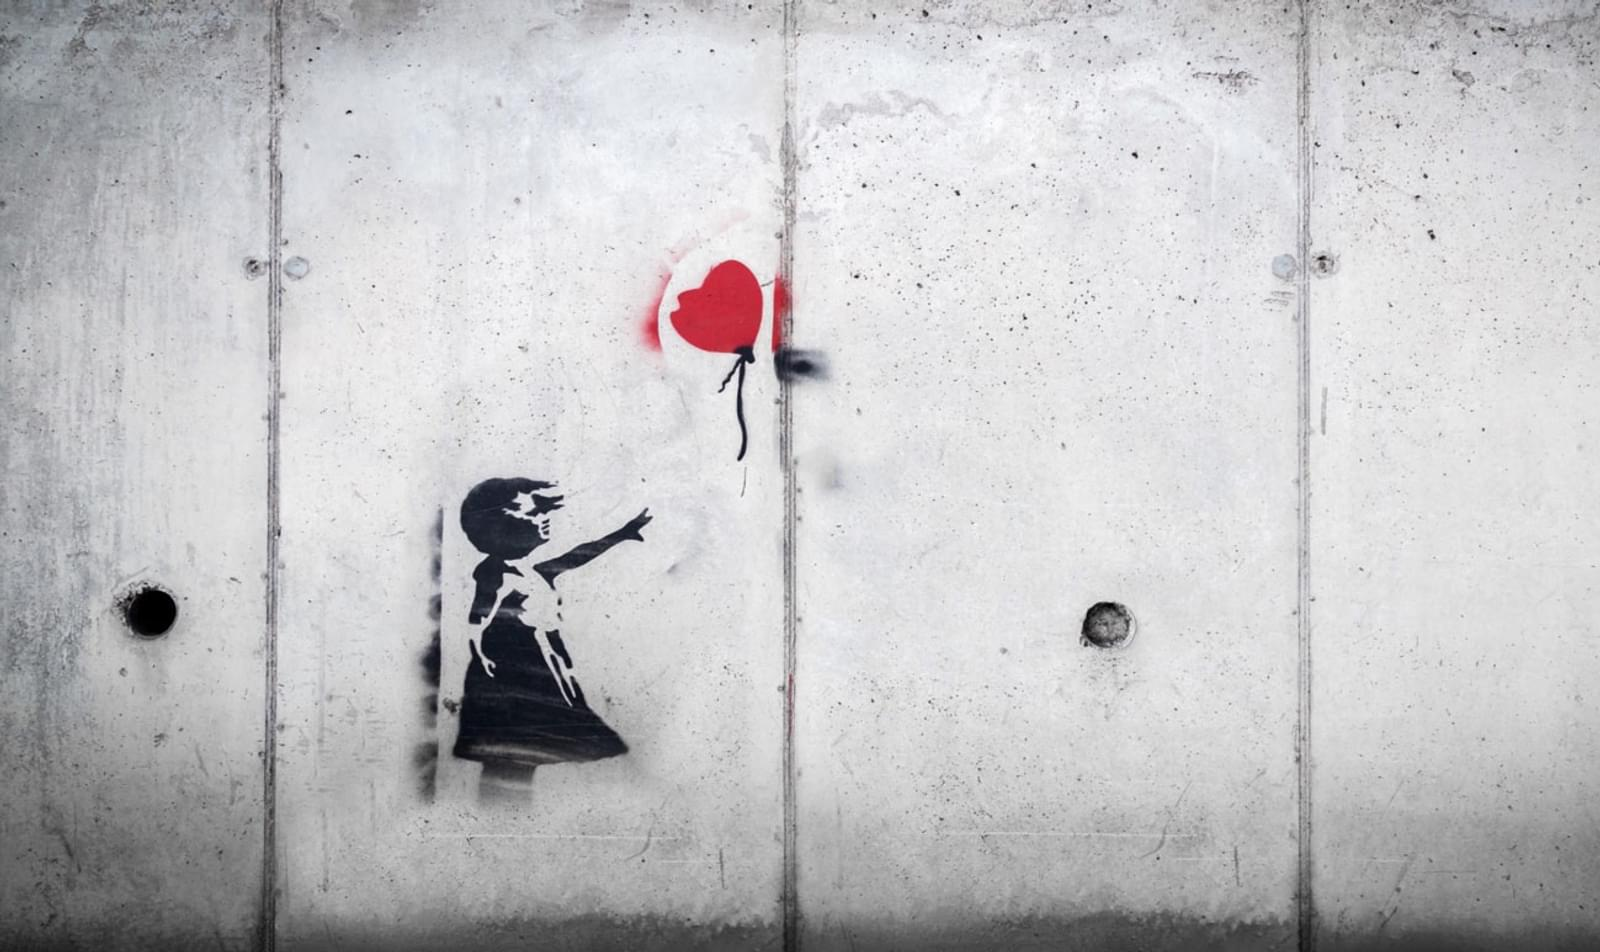 Gray wall with a silhouette of a girl losing a red balloon